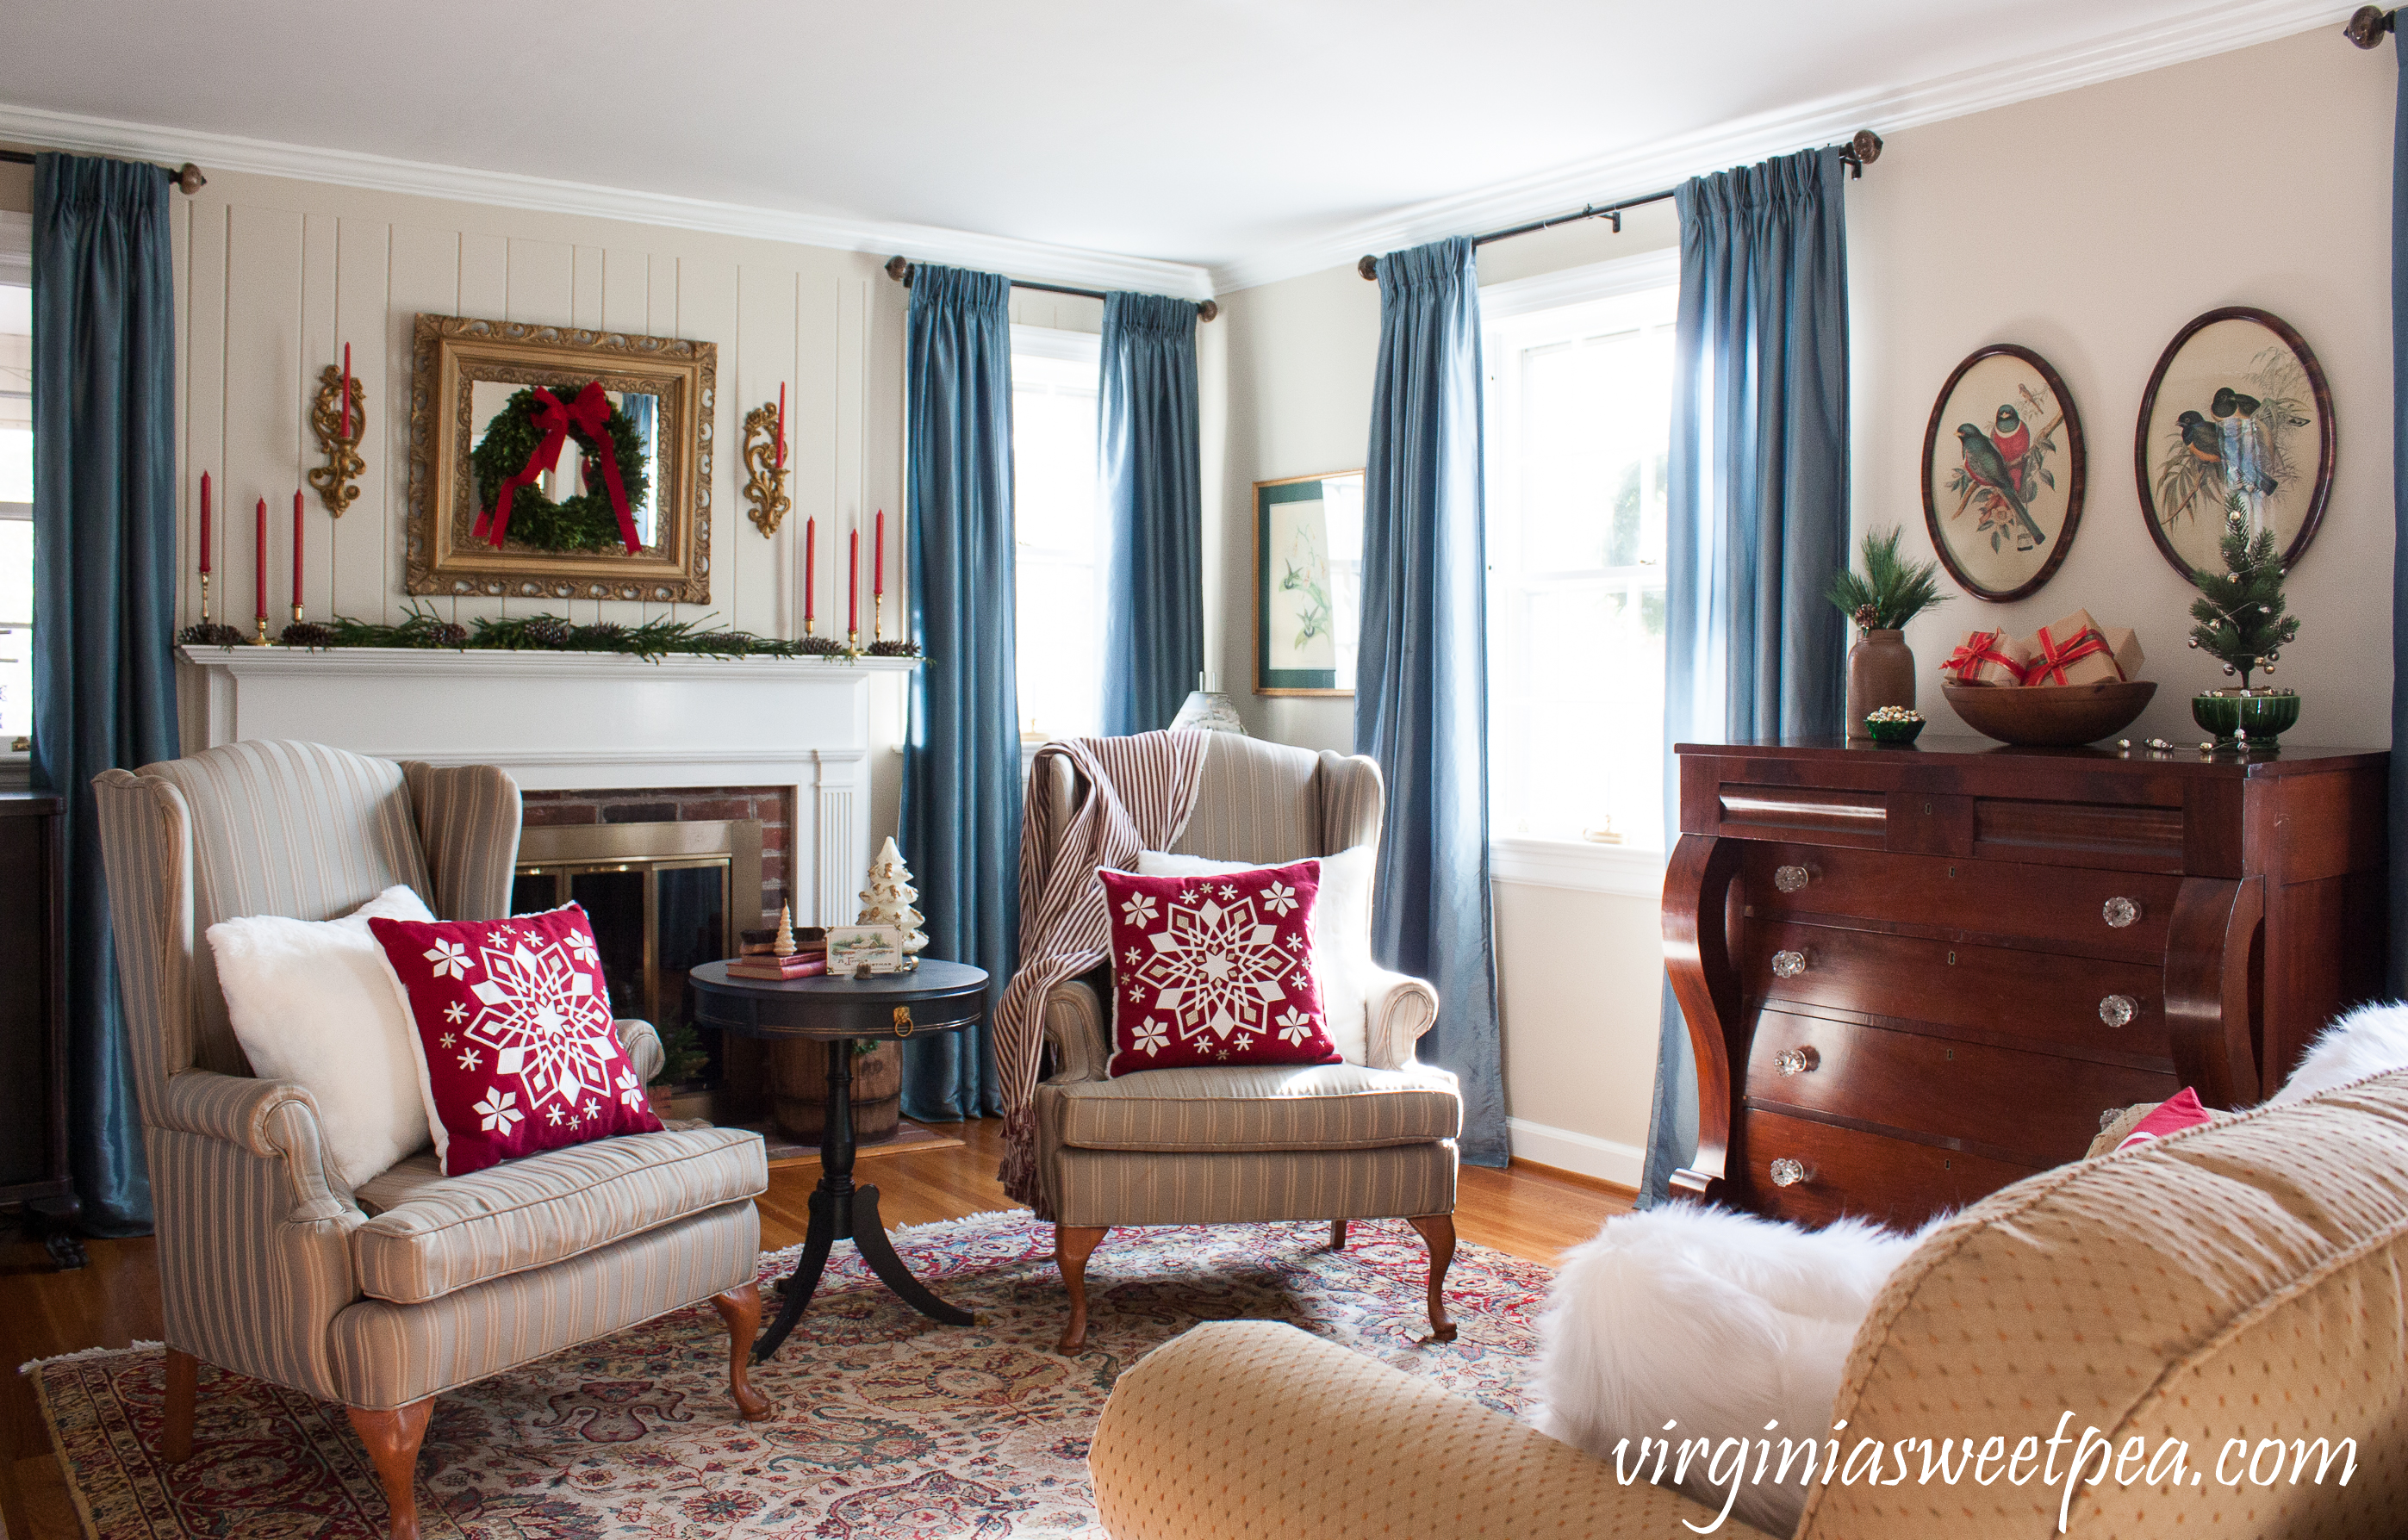 Christmas in the Formal Living Room - See how a home is decorated for Christmas using a collection antique and vintage items. #christmas #christmashomedecor #christmasdecor #christmasdecoration #vintagechristmasdecor